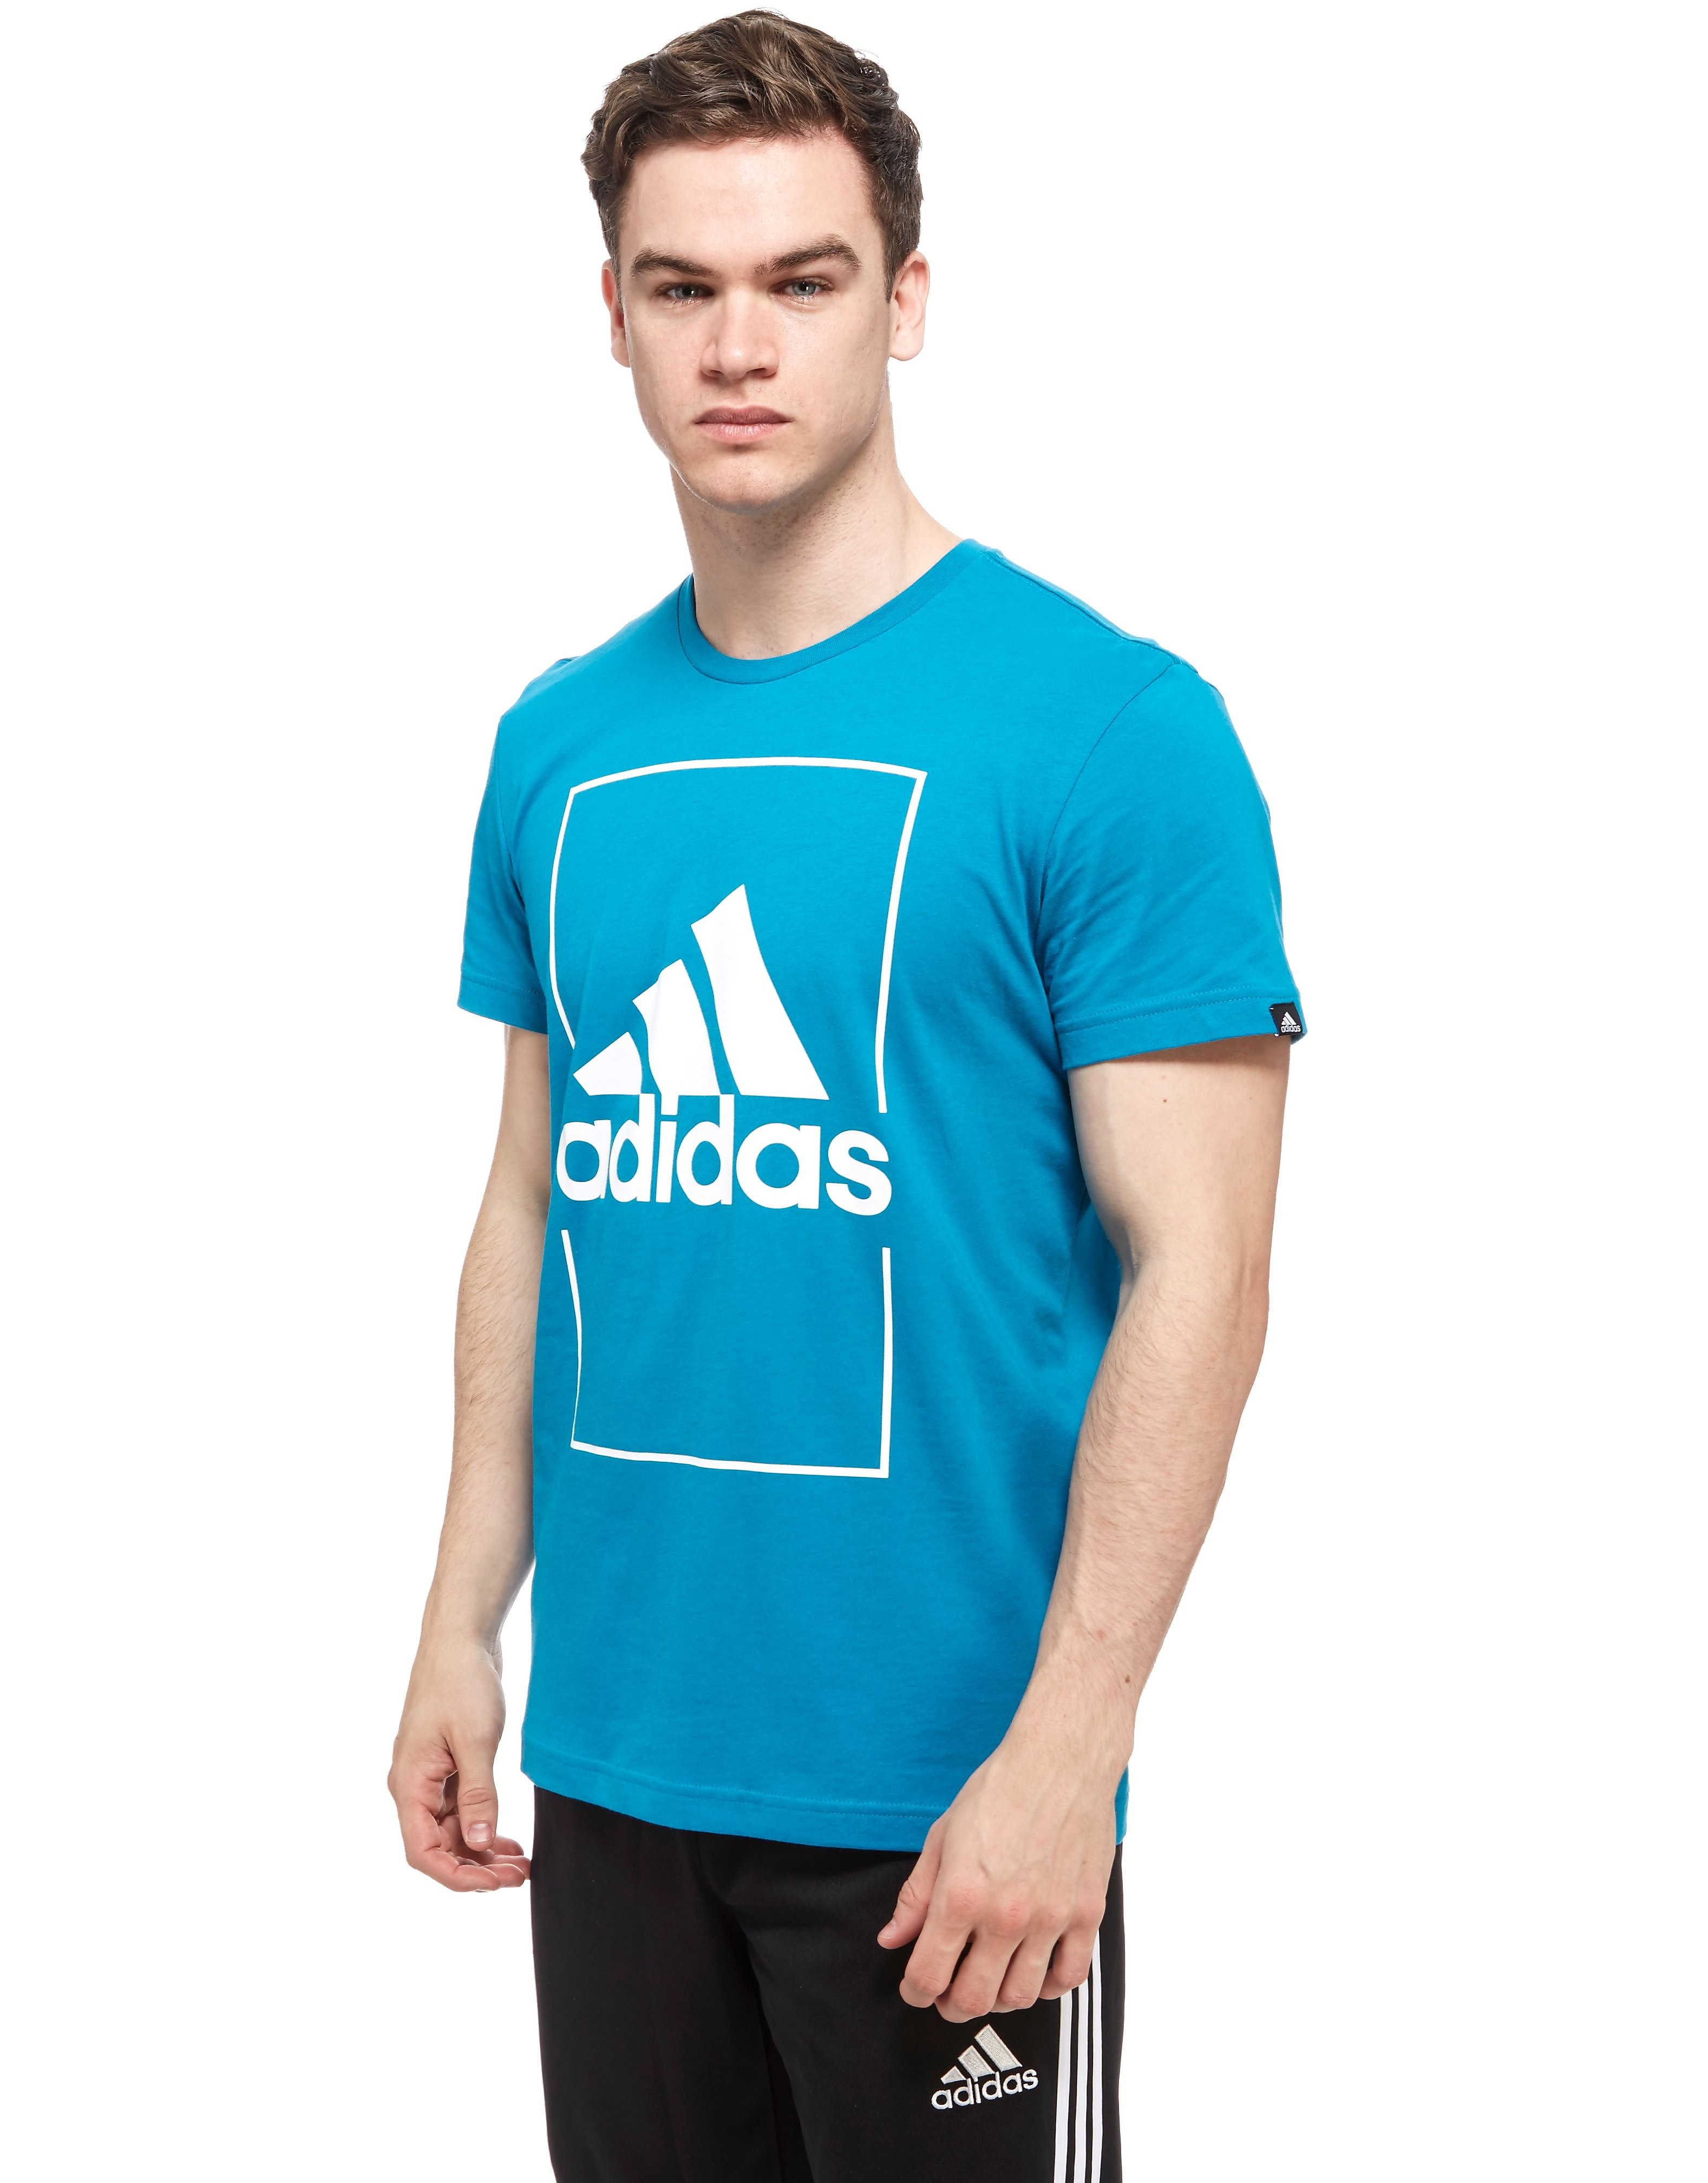 adidas Outline T-Shirt